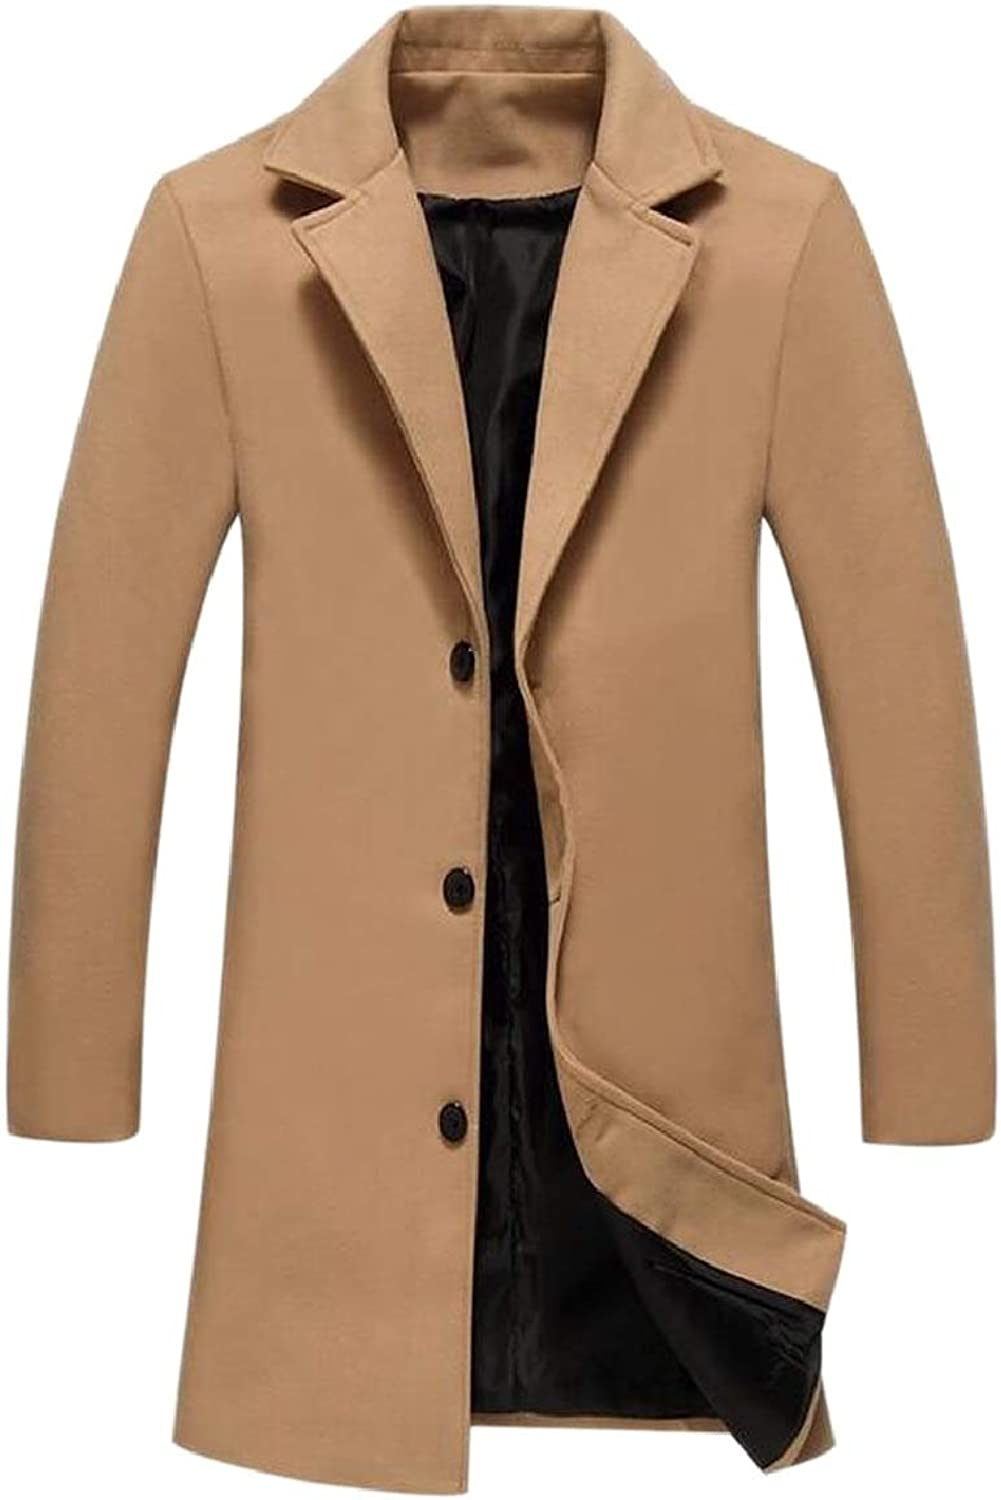 Sayah Mens Plus Velvet Solidcolord Thickening Hood RelaxedFit Overcoat Outerwear